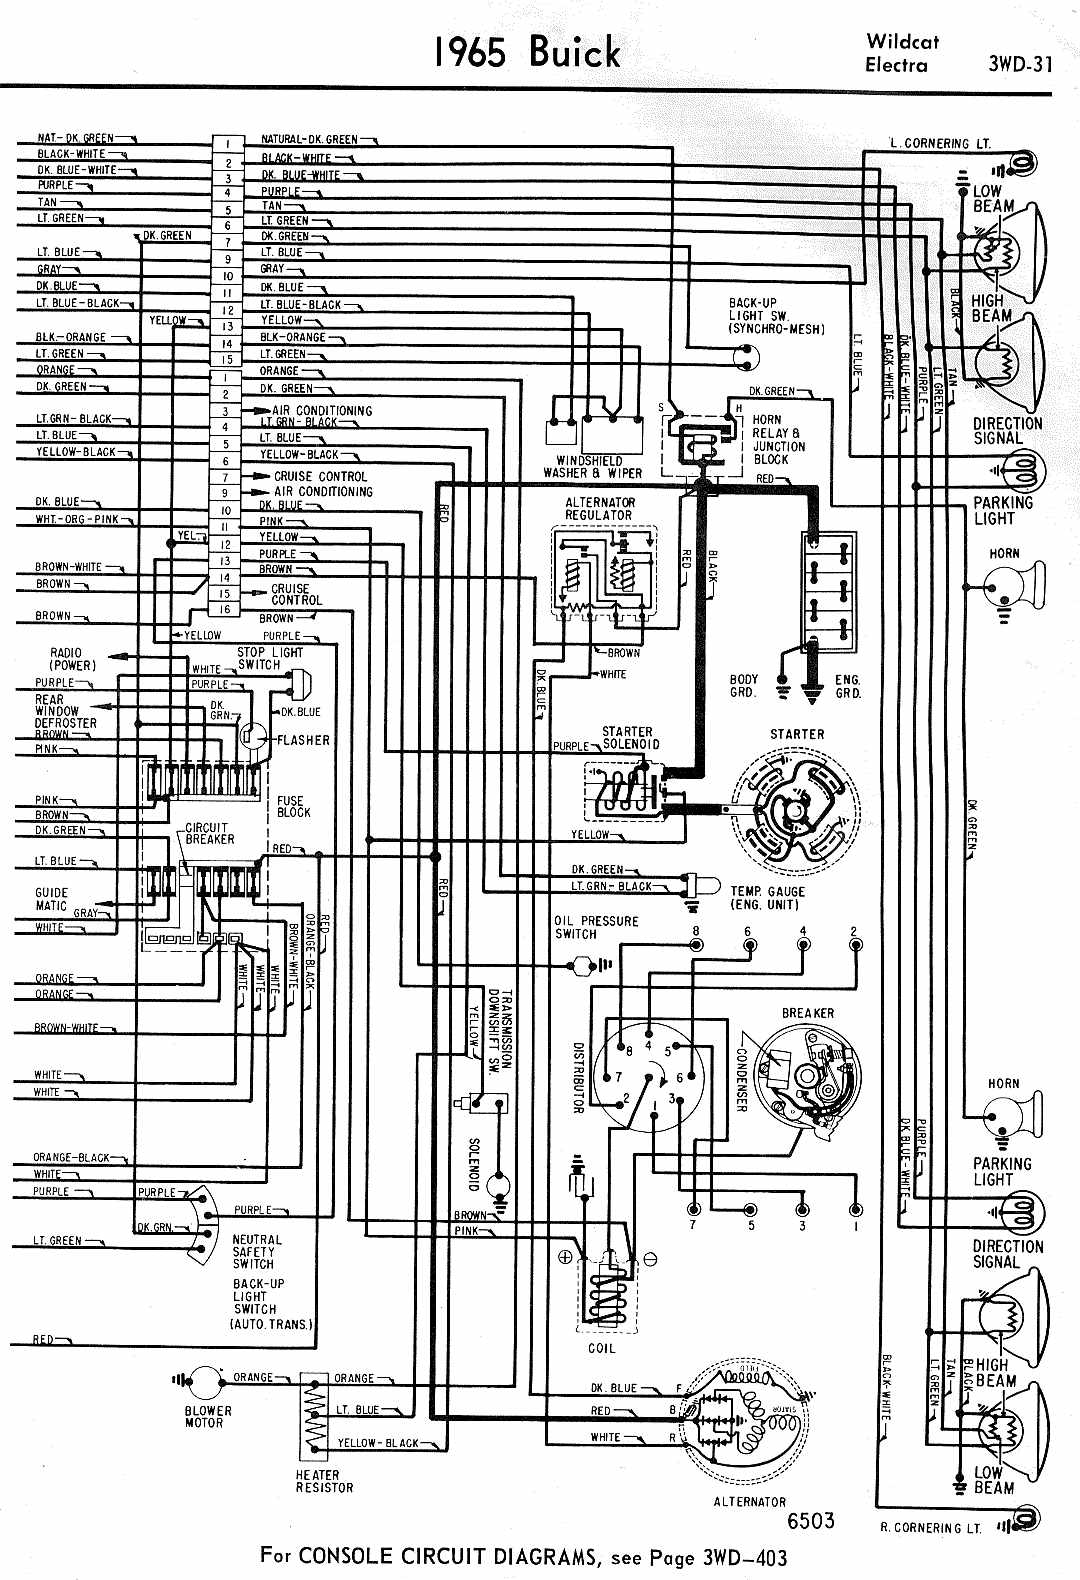 Haywire Wiring Harness Diagram Electrical Street Rod 72 88 Royale Diagrams Series And Parallel Circuits Toggle Switch